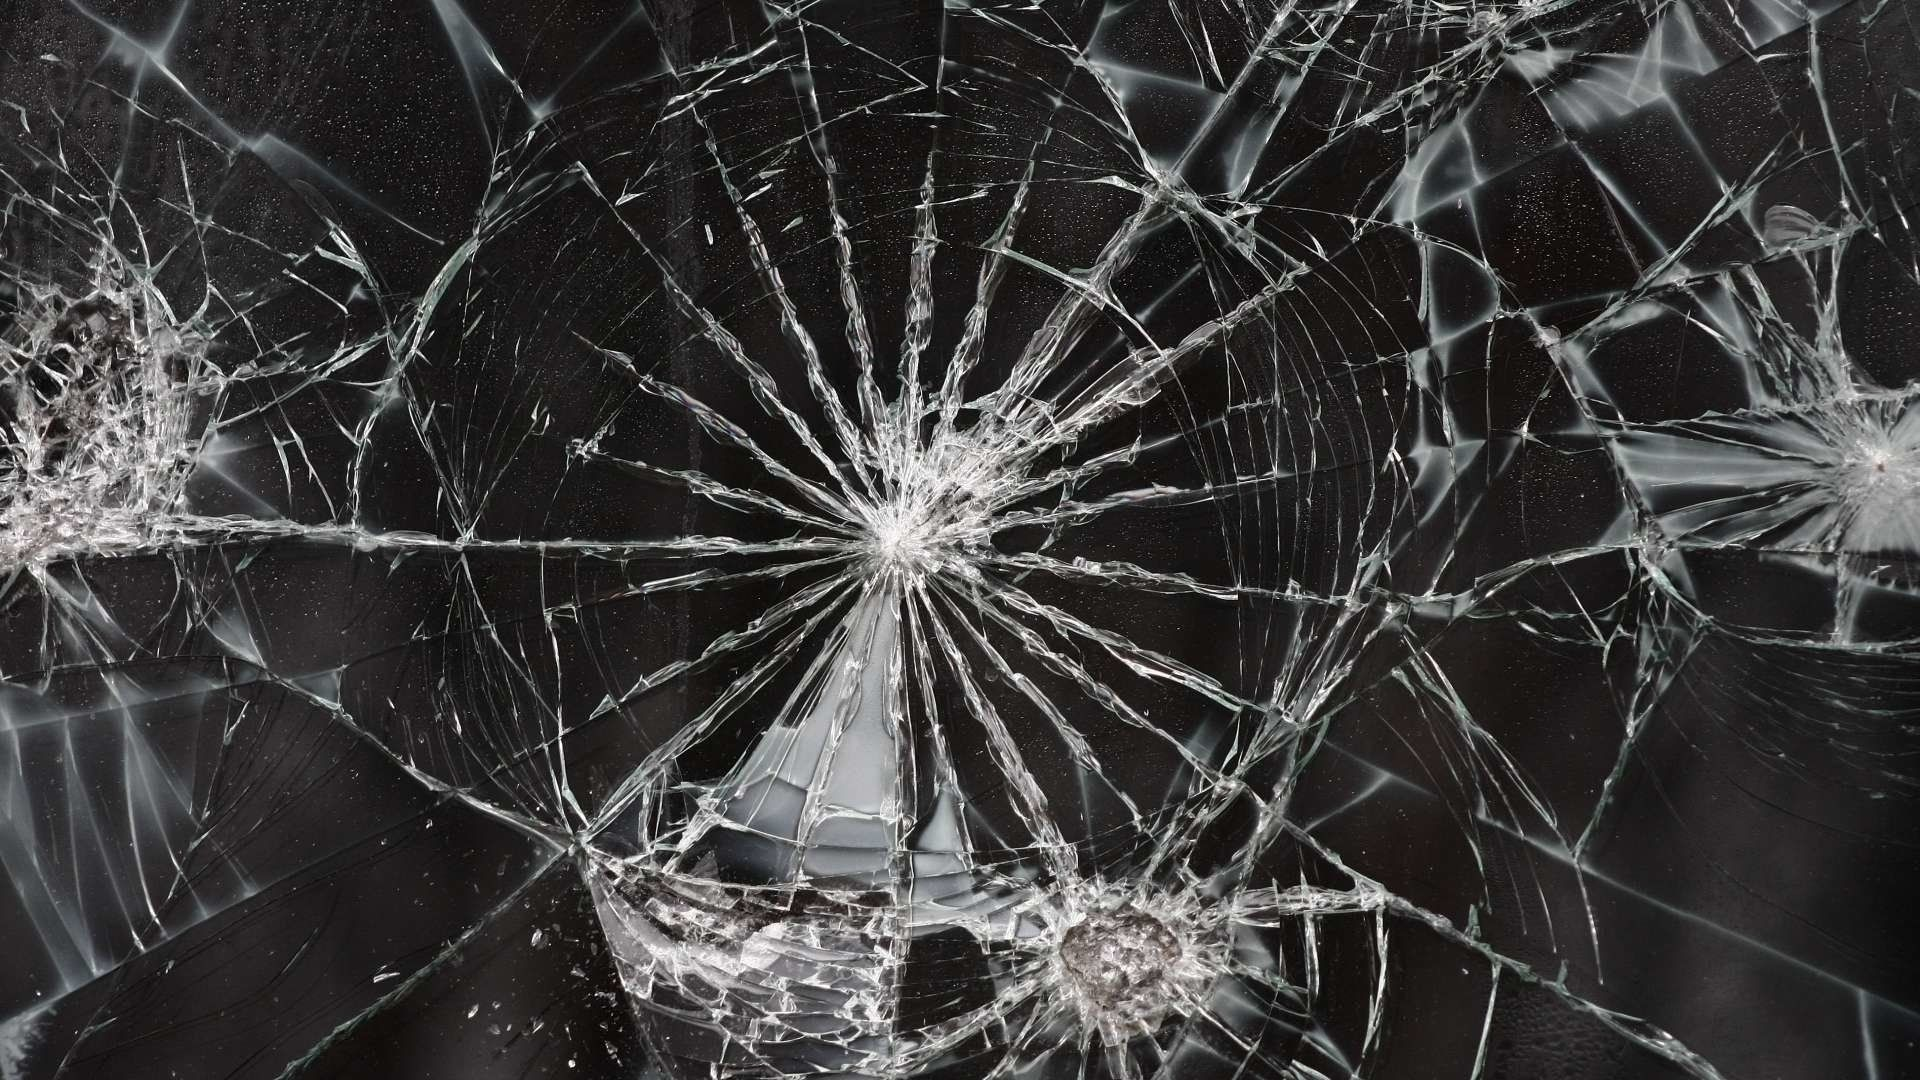 Cracked iPhone wallpaper – How to Fix It